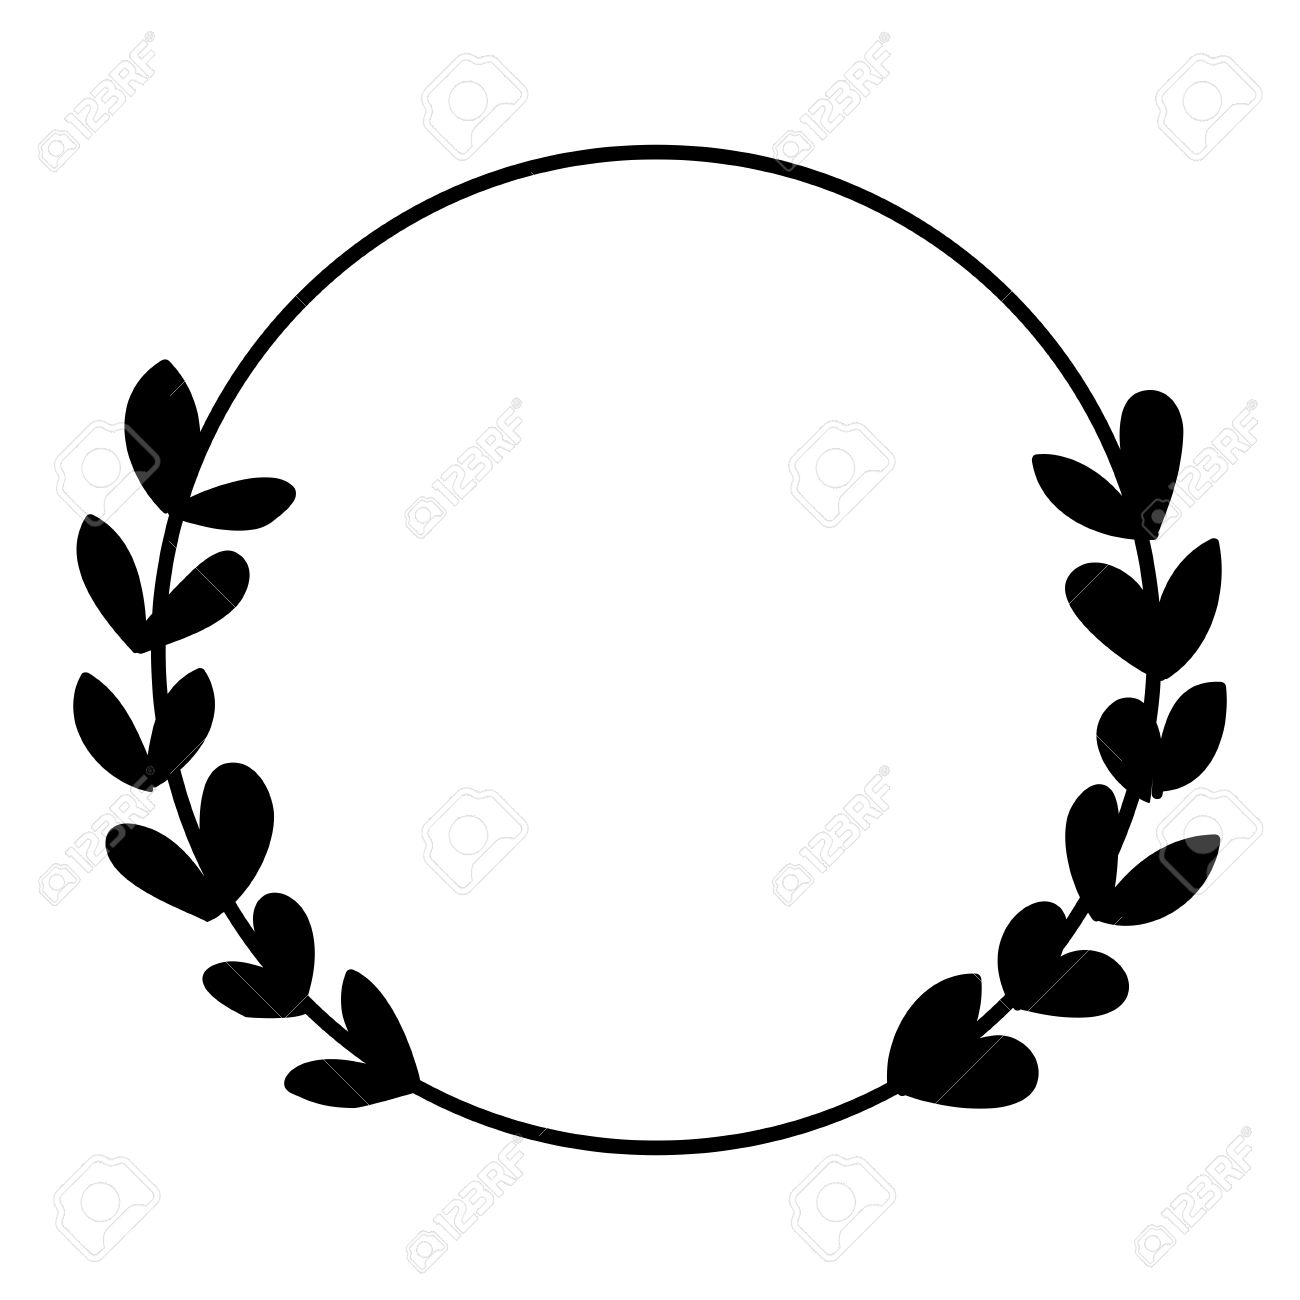 laurel wreath black and white photo vector frame isolated on rh 123rf com wreath clip art black and white free